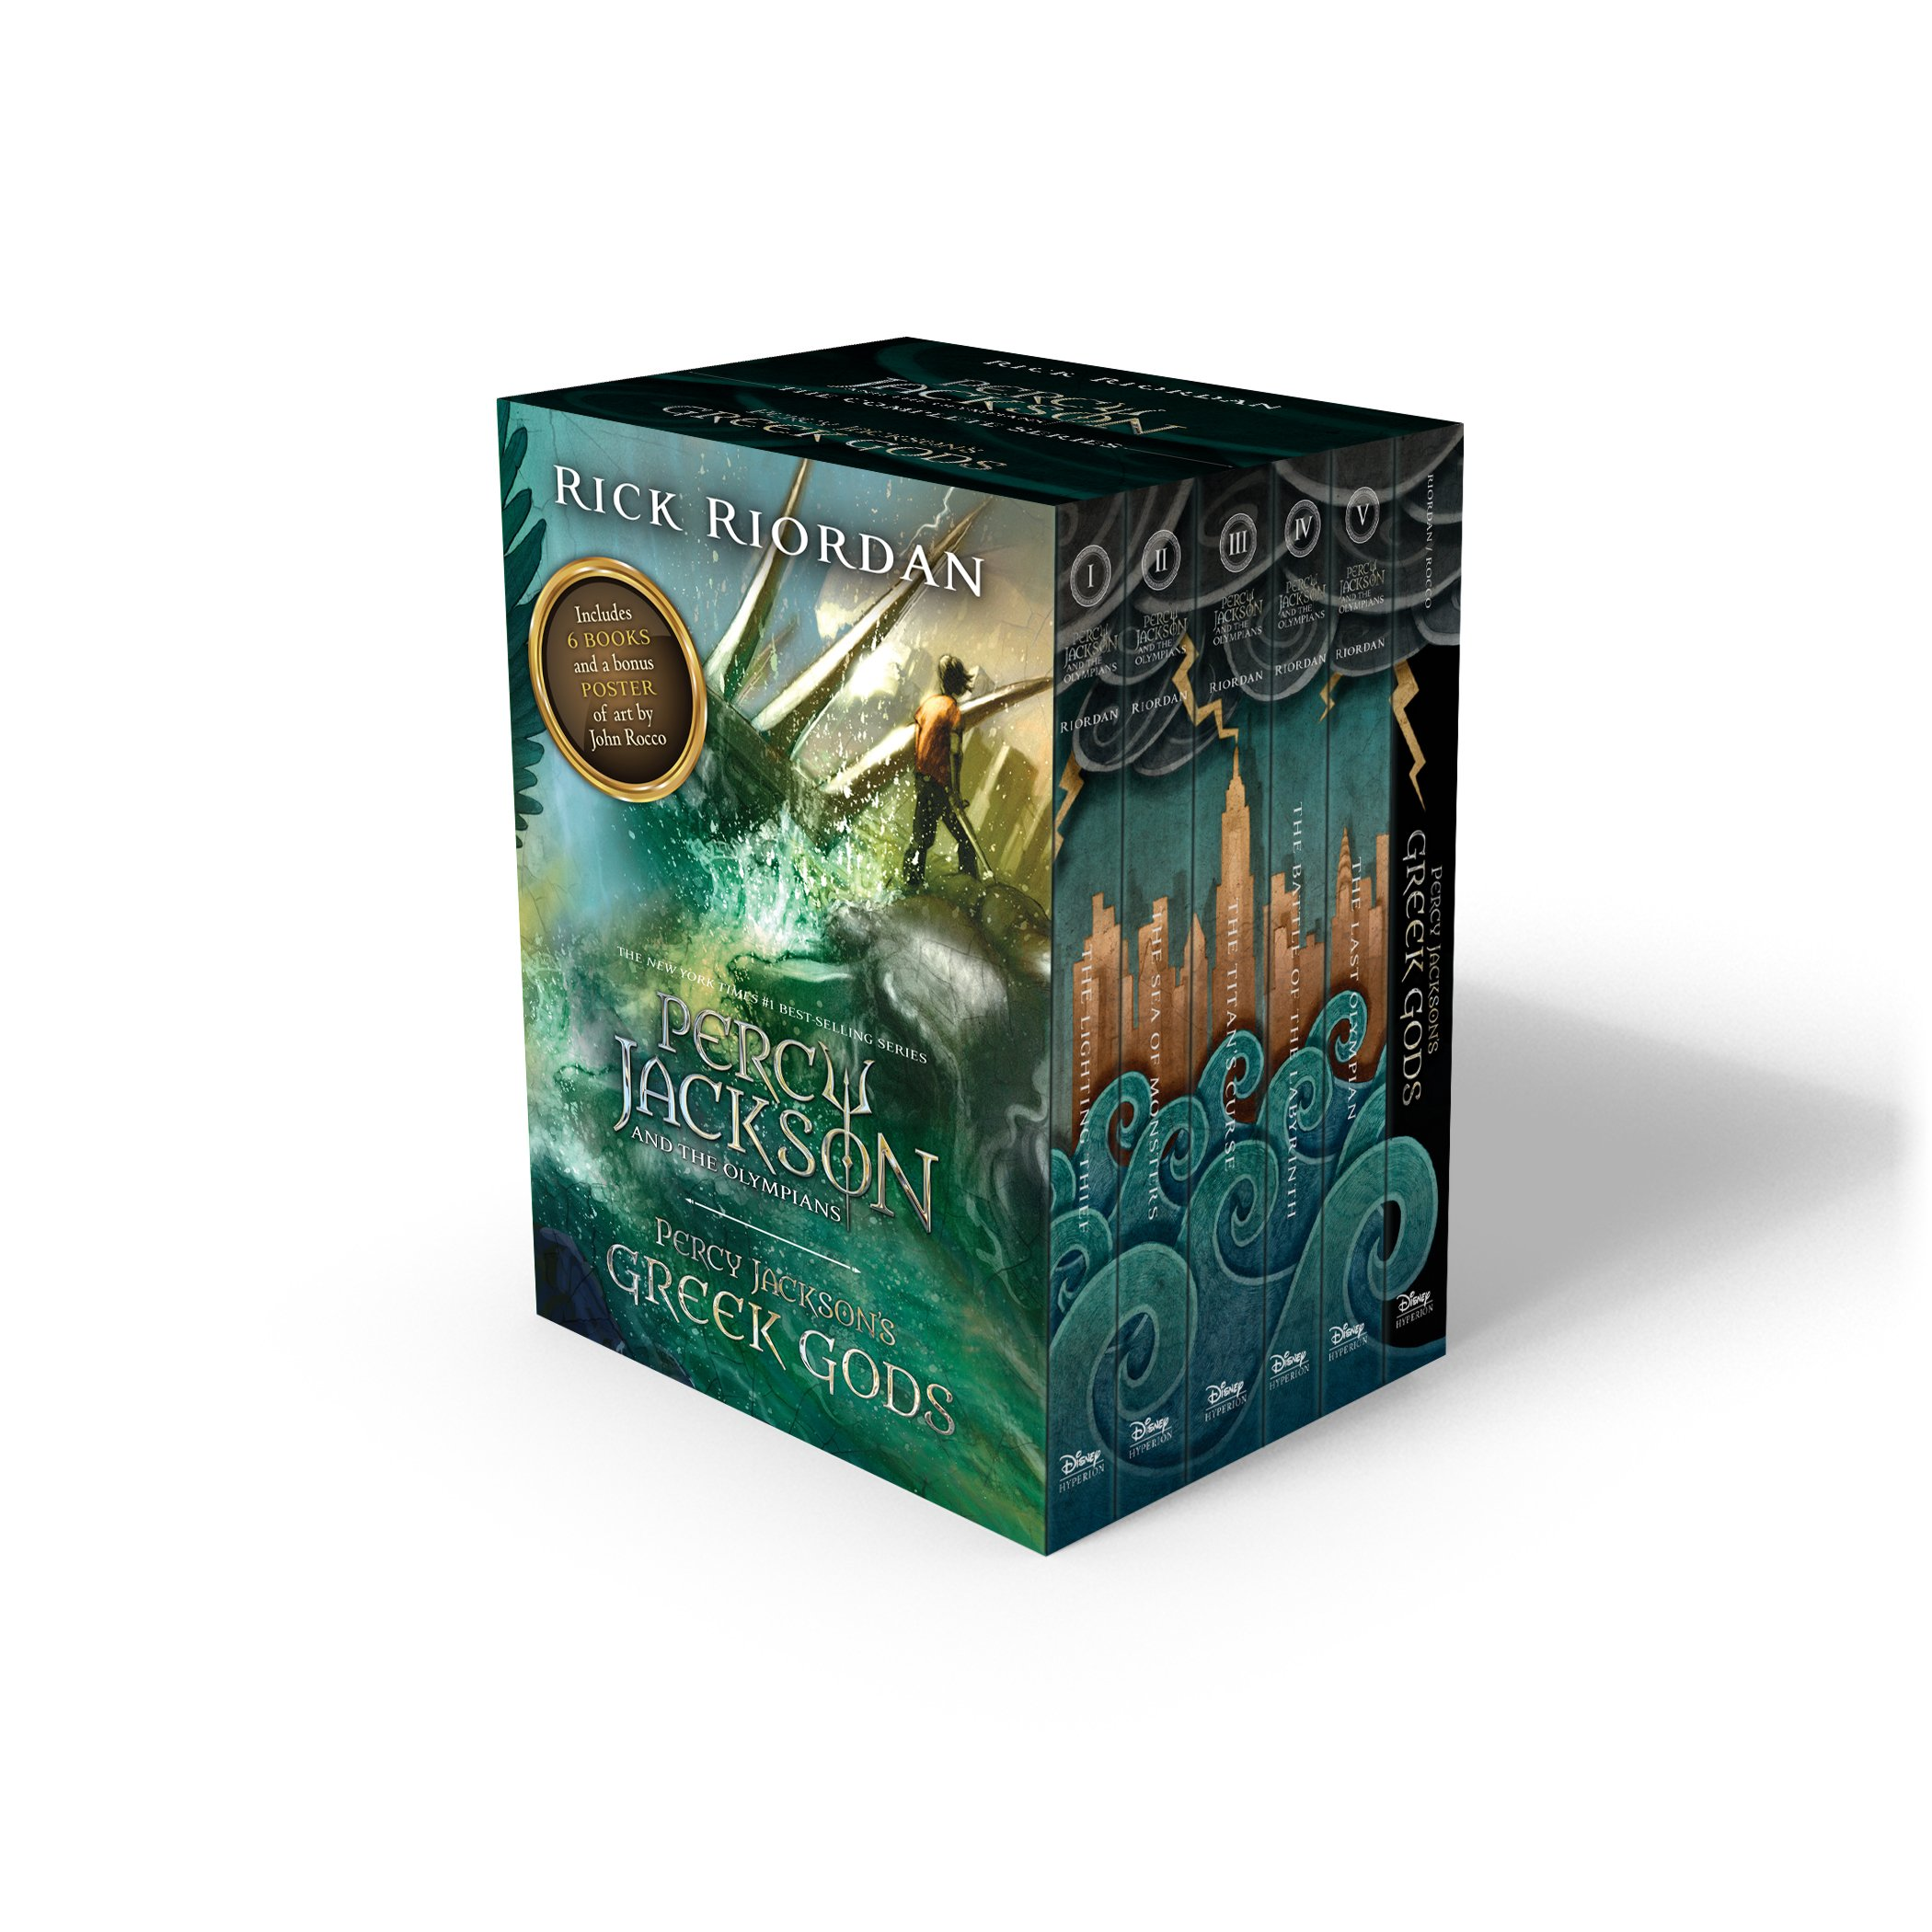 Percy Jackson and the Olympians Complete Series and Percy Jacksons Greek Gods Boxed Set Paperback Jan 01, 2016 Rick Riordan and John Rocco: Amazon.es: Libros